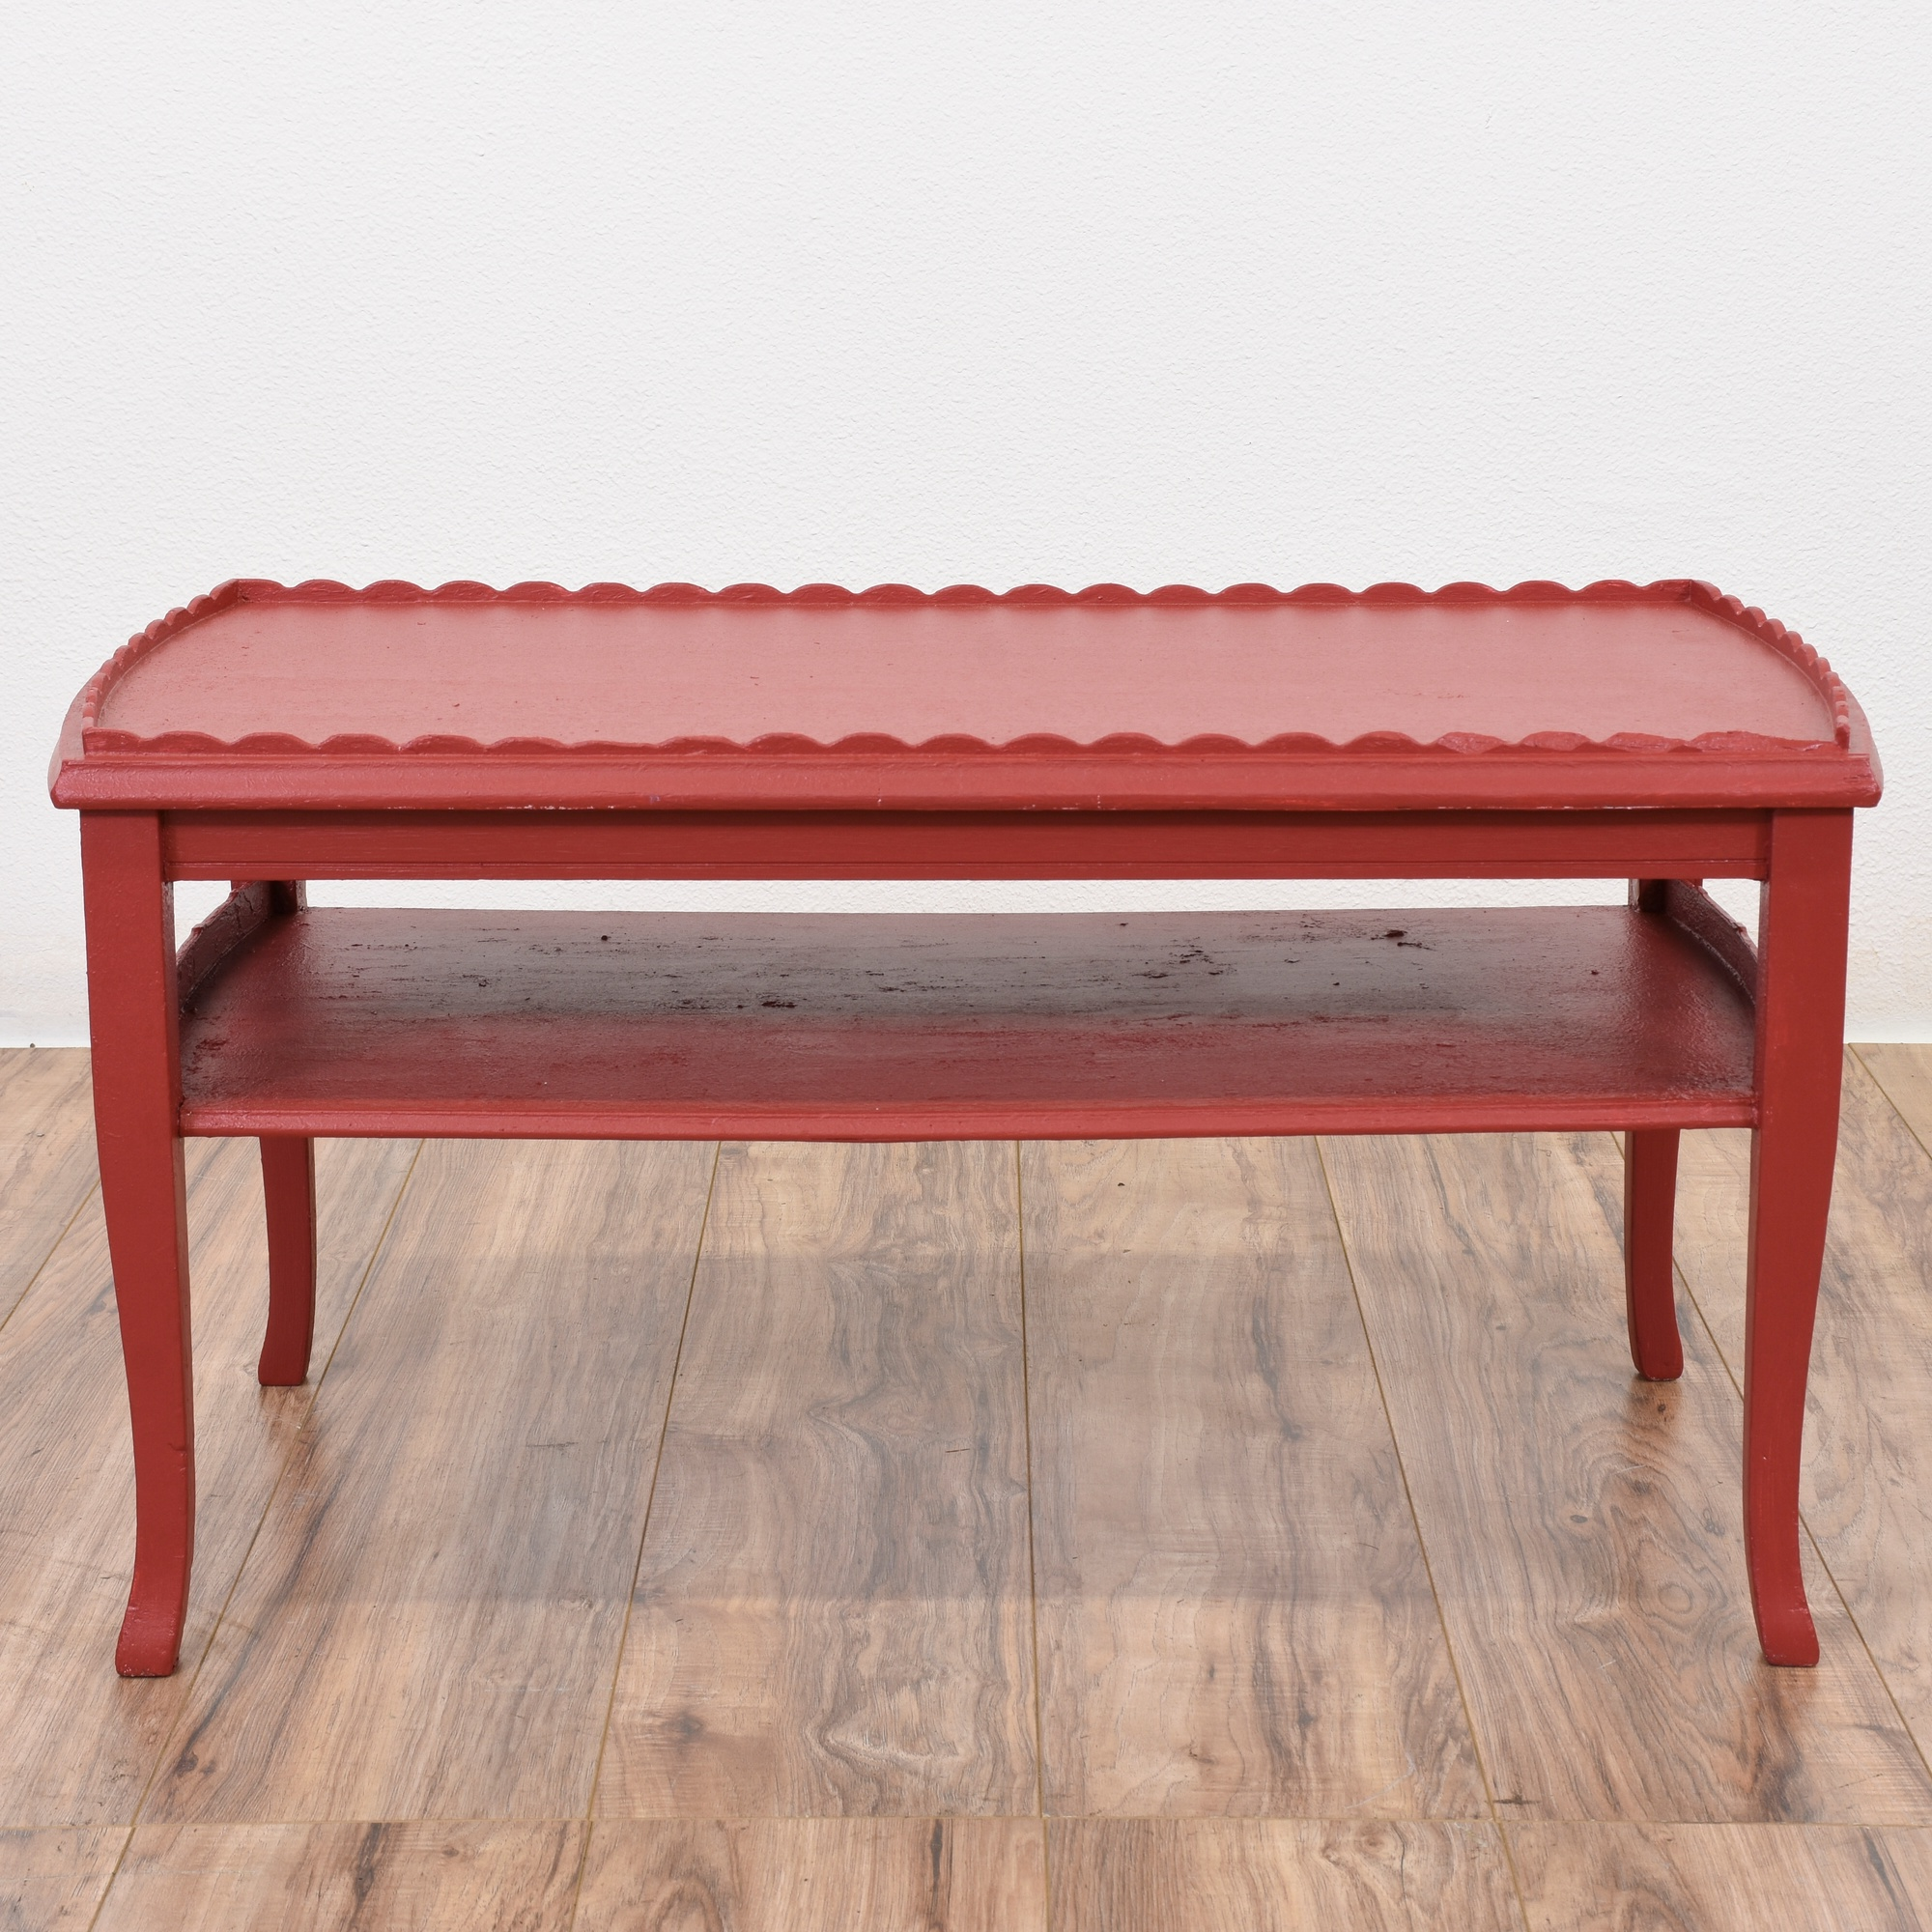 Shabby Chic Red 2 Tiered Coffee Table Loveseat Vintage Furniture San Diego Los Angeles